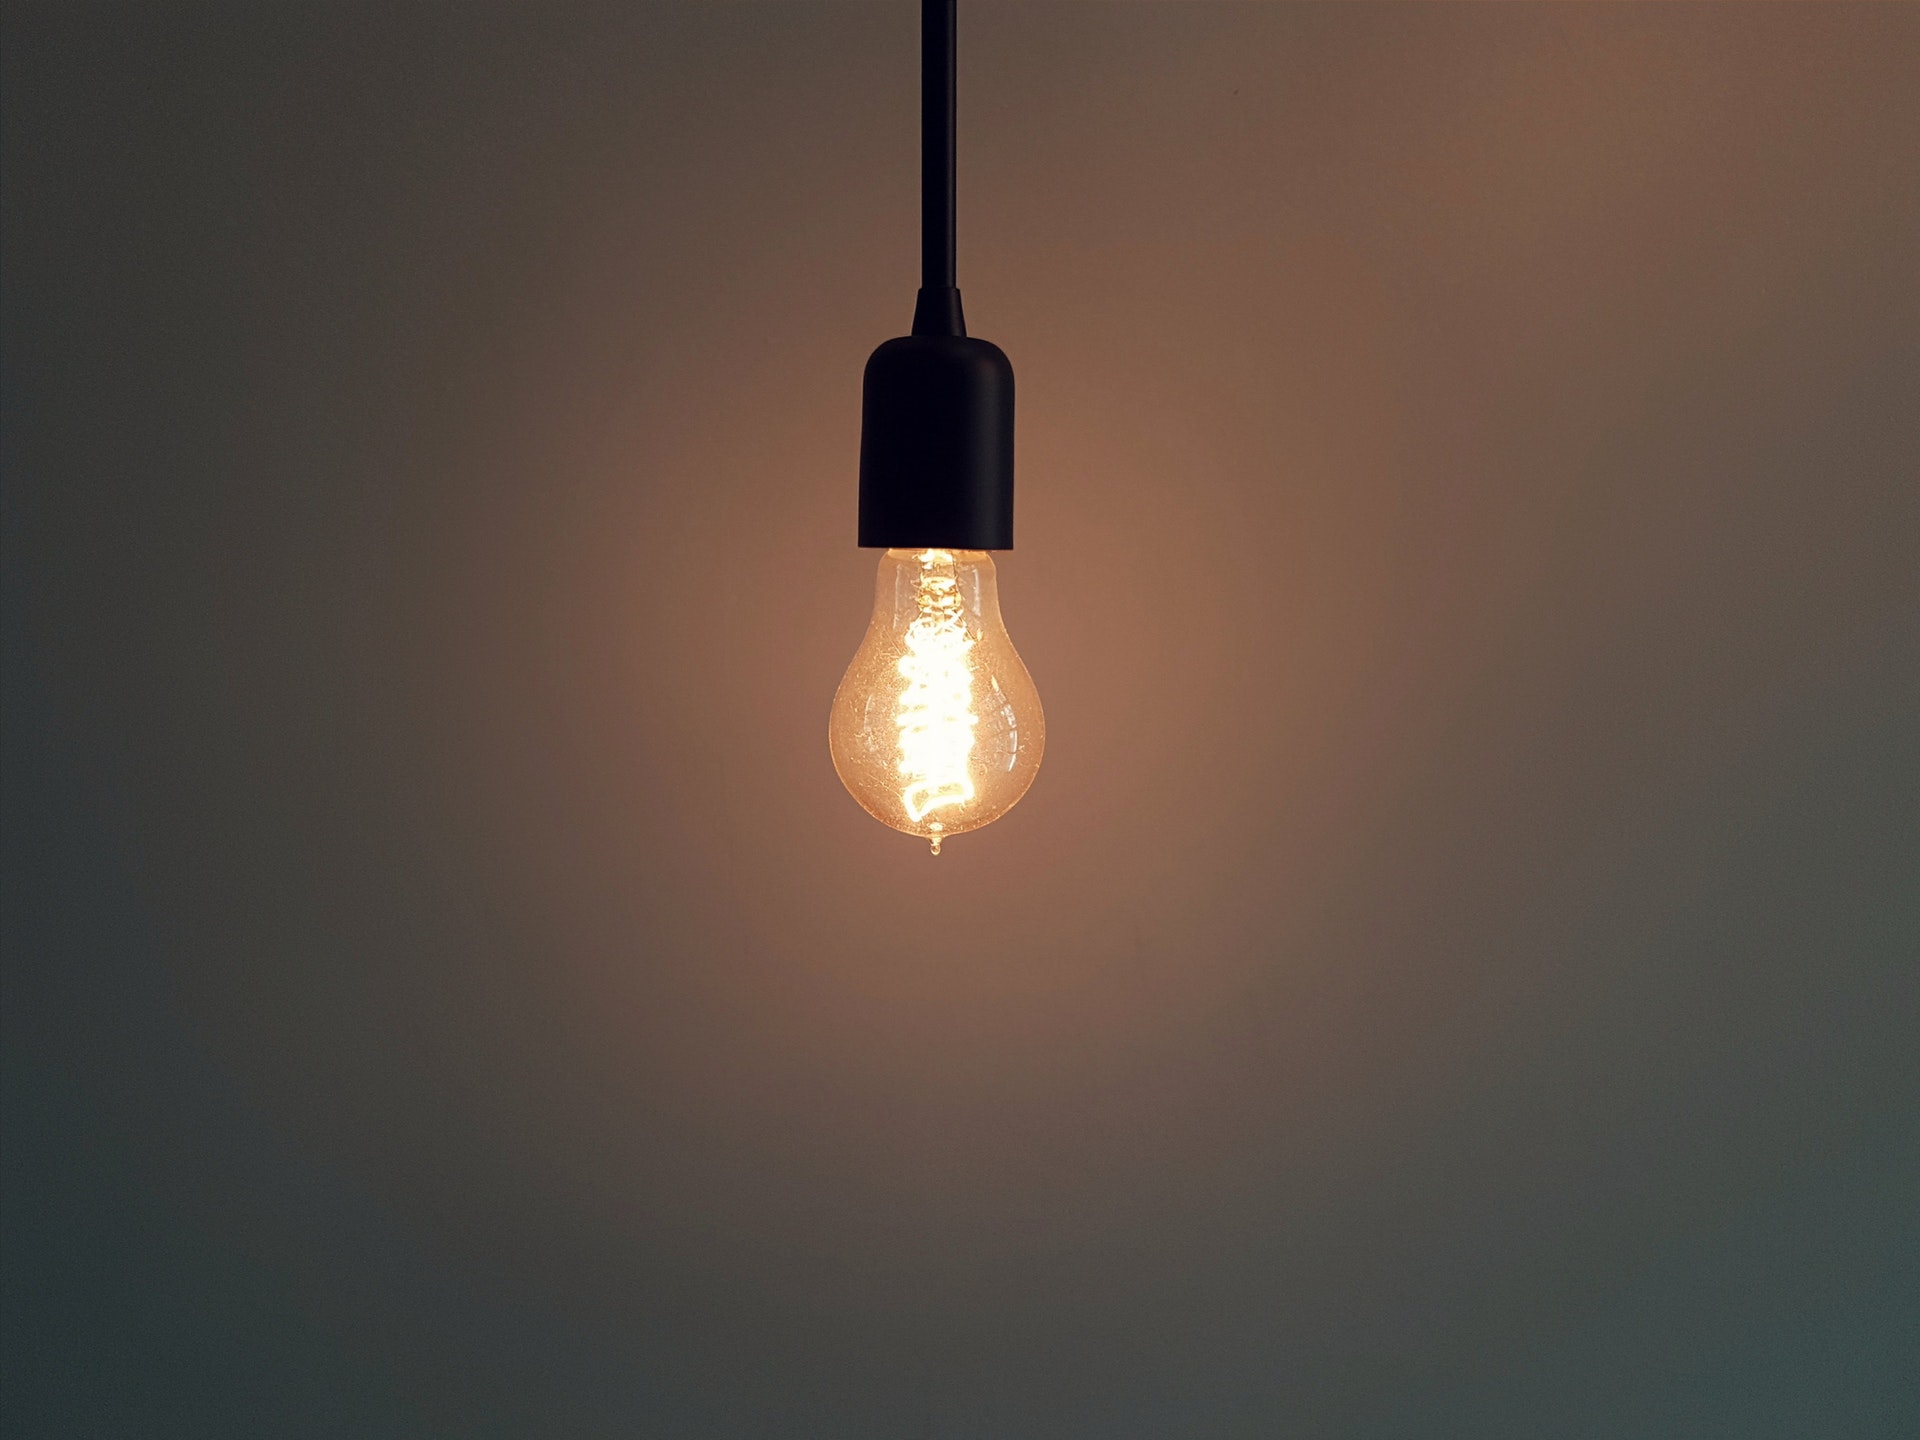 A light bulb hanging from the ceiling from a power cable, illuminating the plain background wall.